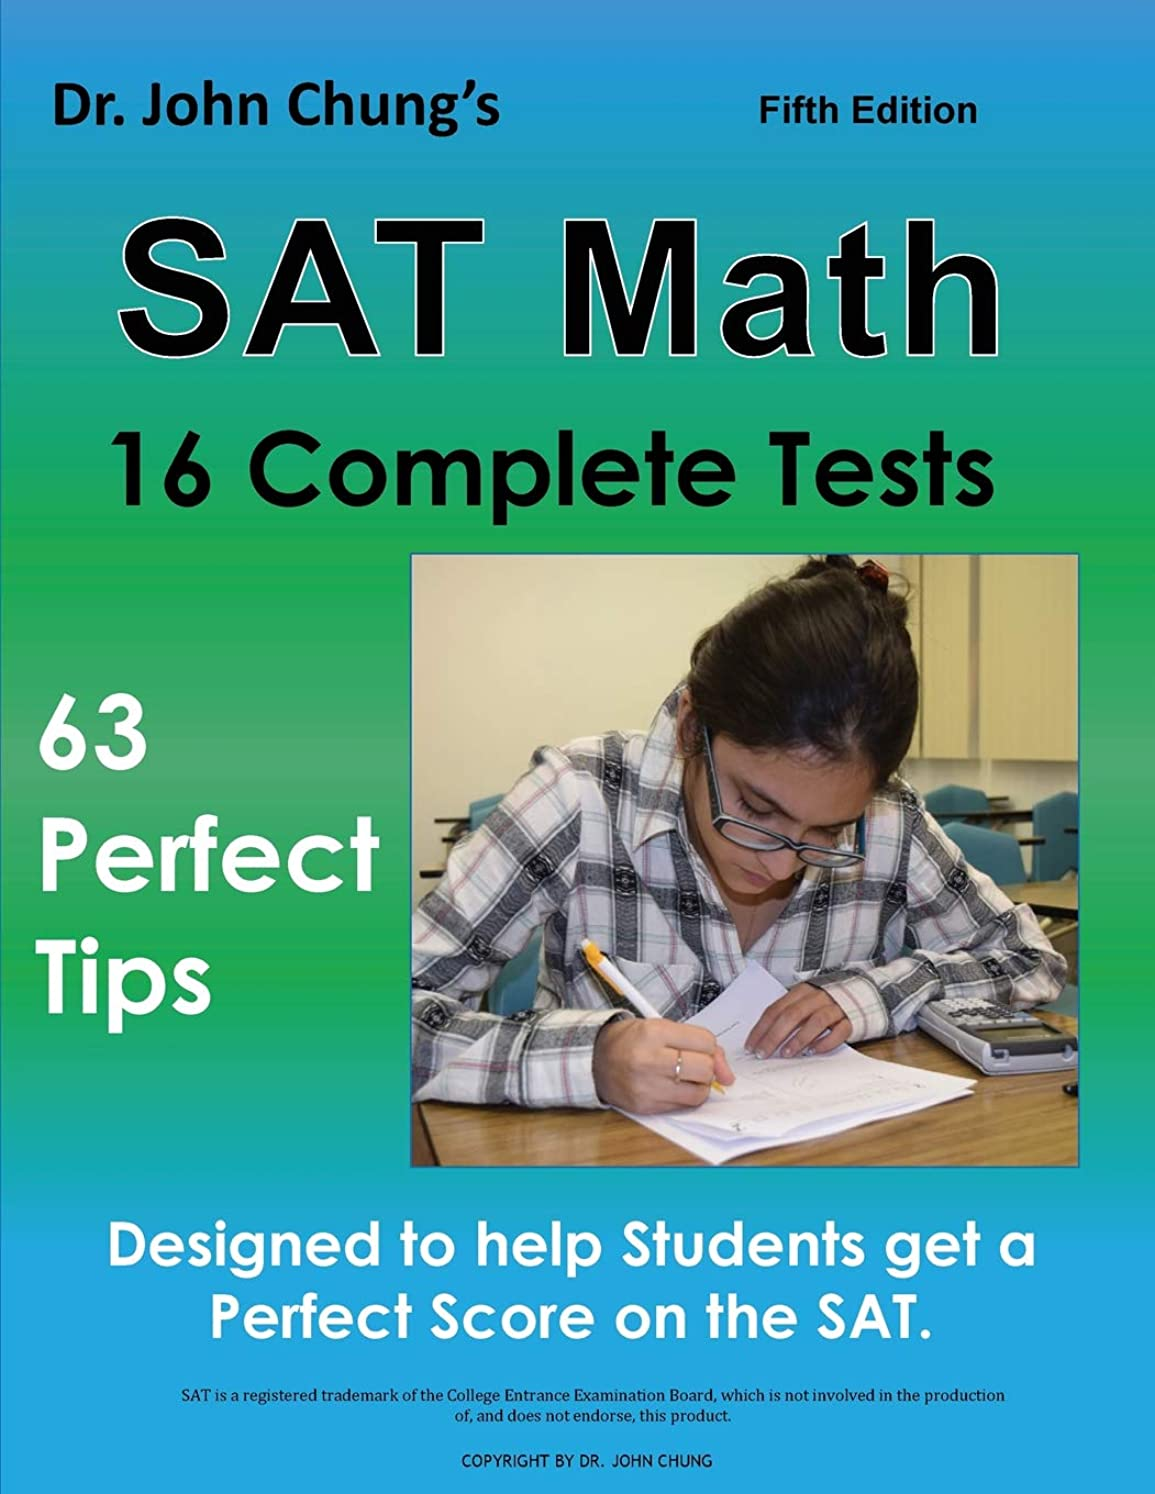 ルーフおばさん同様のDr. John Chung's SAT Math Fifth Edition: 63 Perfect Tips and 16 Complete Tests